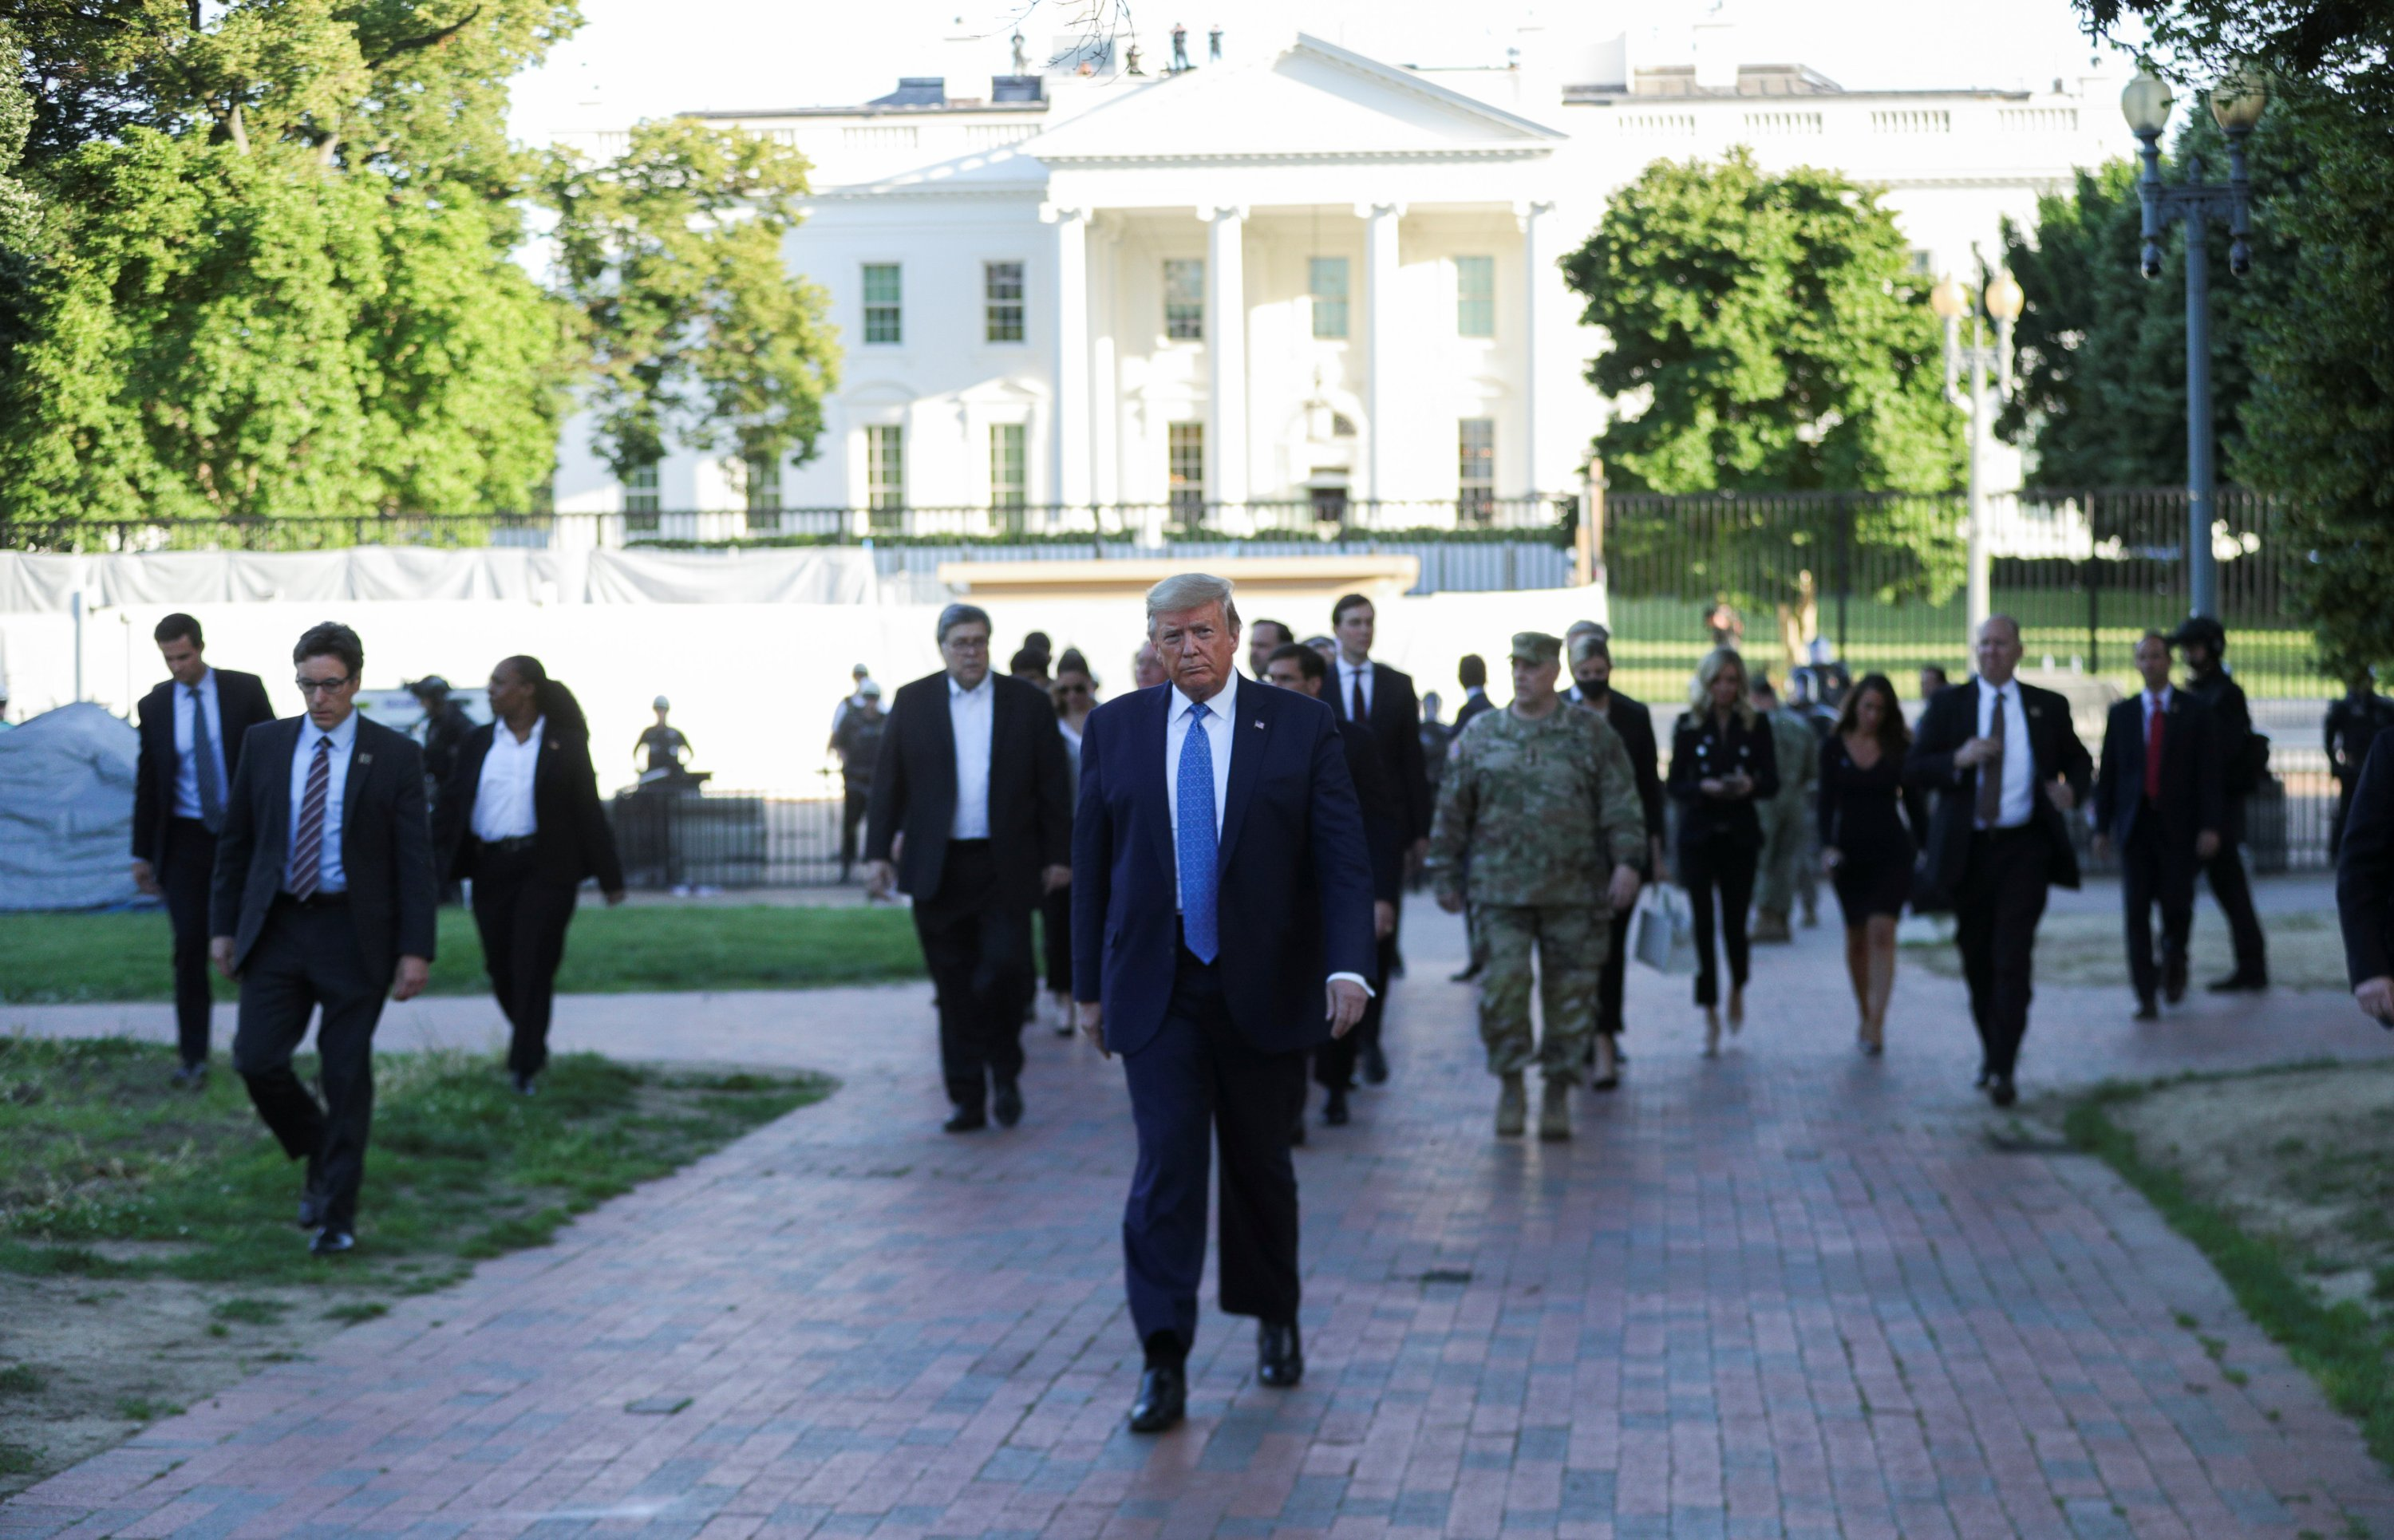 U.S. President Donald Trump walks through Lafayette Park to visit St. John's Episcopal Church across from the White House during ongoing protests over racial inequality in the wake of the death of George Floyd while in Minneapolis police custody, at the White House in Washington, U.S., June 1, 2020. (Reuters Photo)